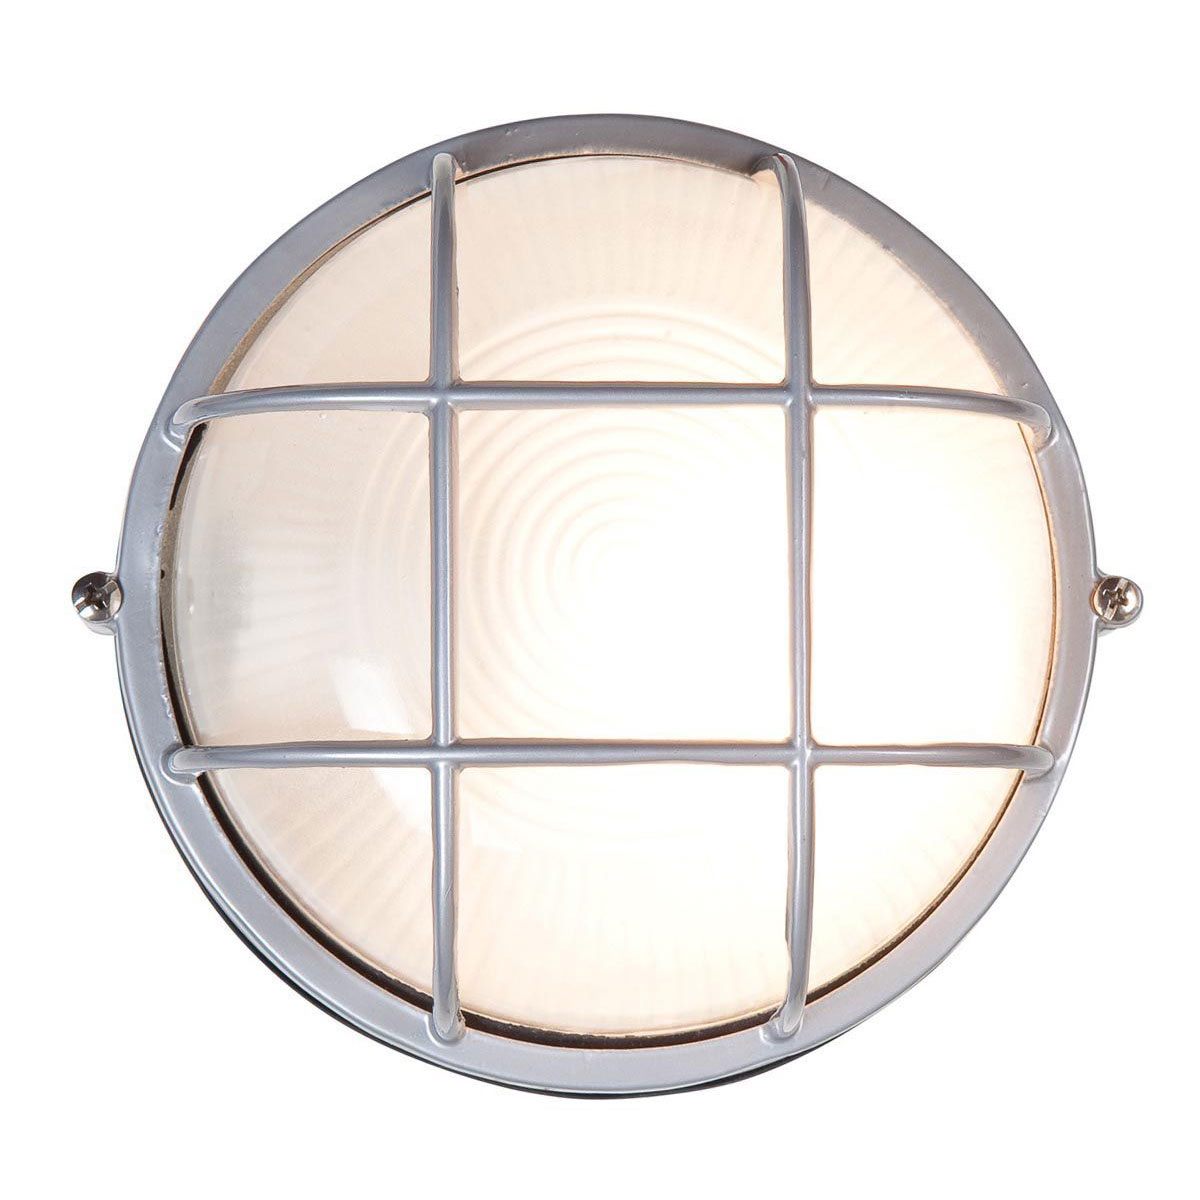 Nauticus Round Outdoor Bulkhead Wall  -  Ceiling Light